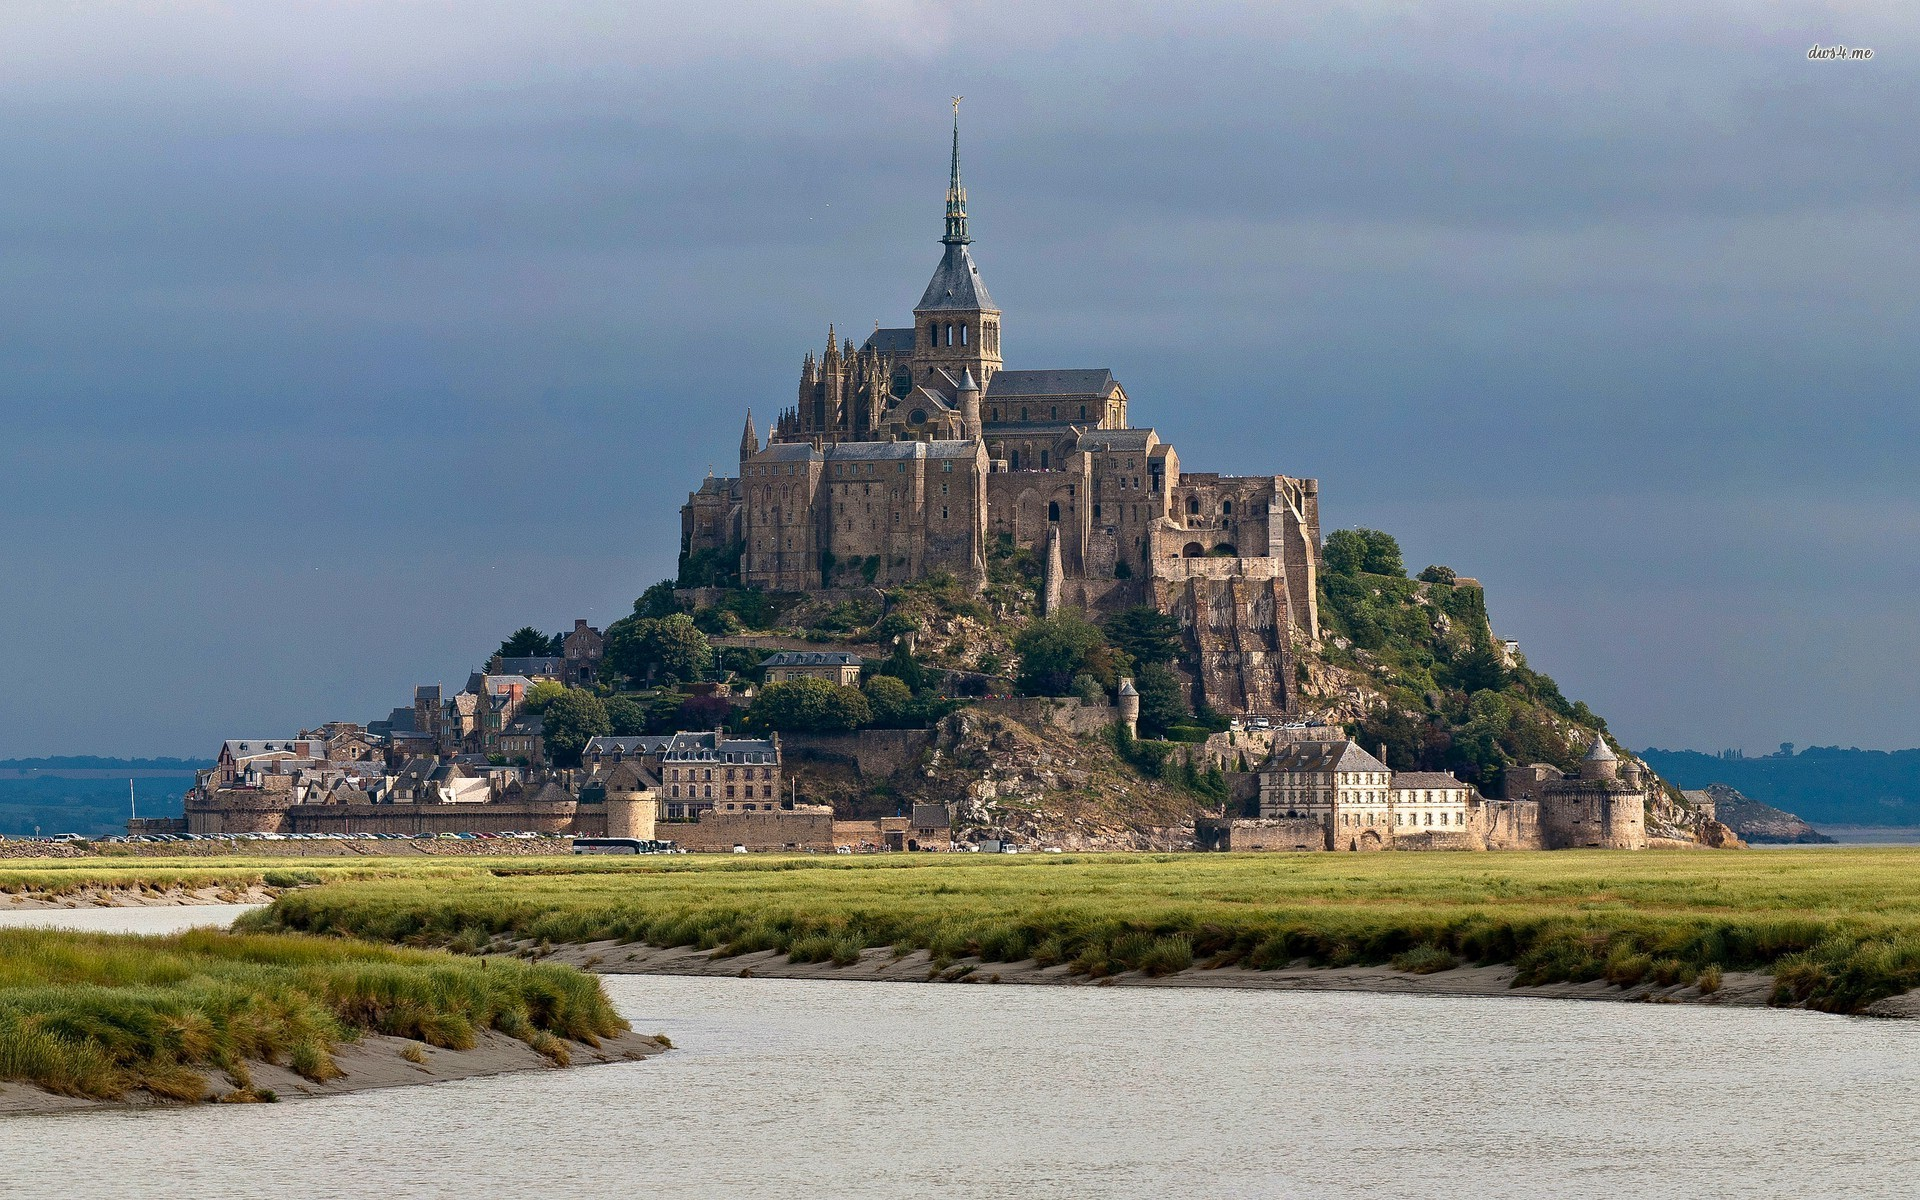 mont-saint-michel-france-normandy-europe-castle-world-1920x1200-wallpaper459439